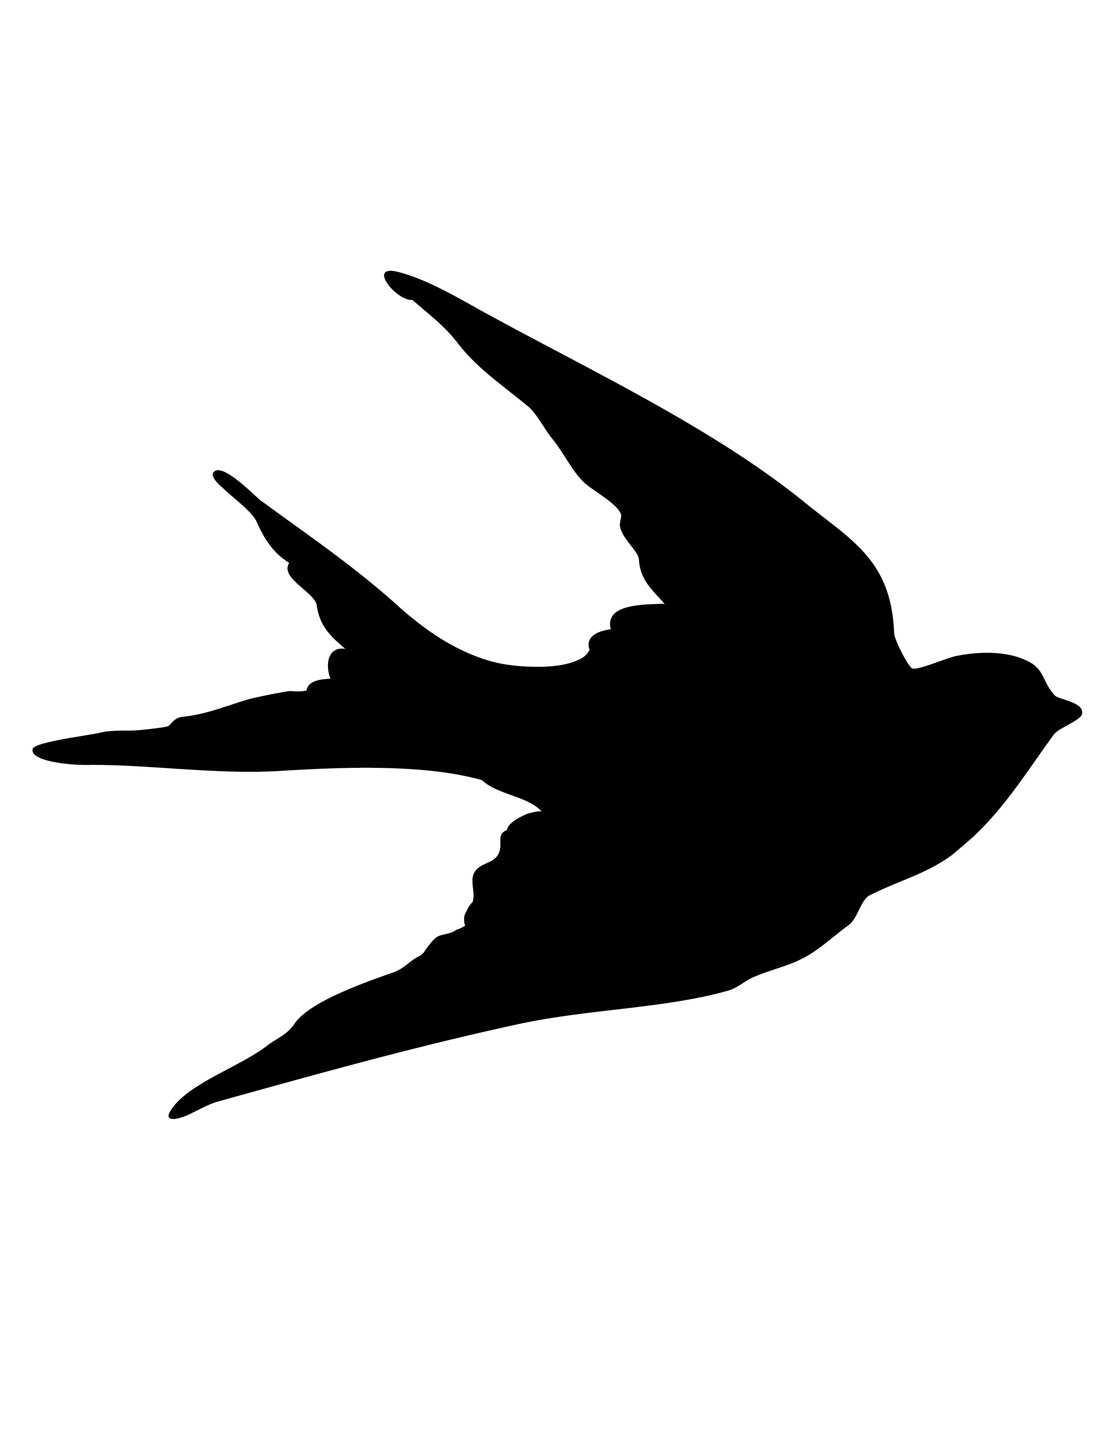 Transfer Printables - Bird Silhouettes - Swallows - The ...